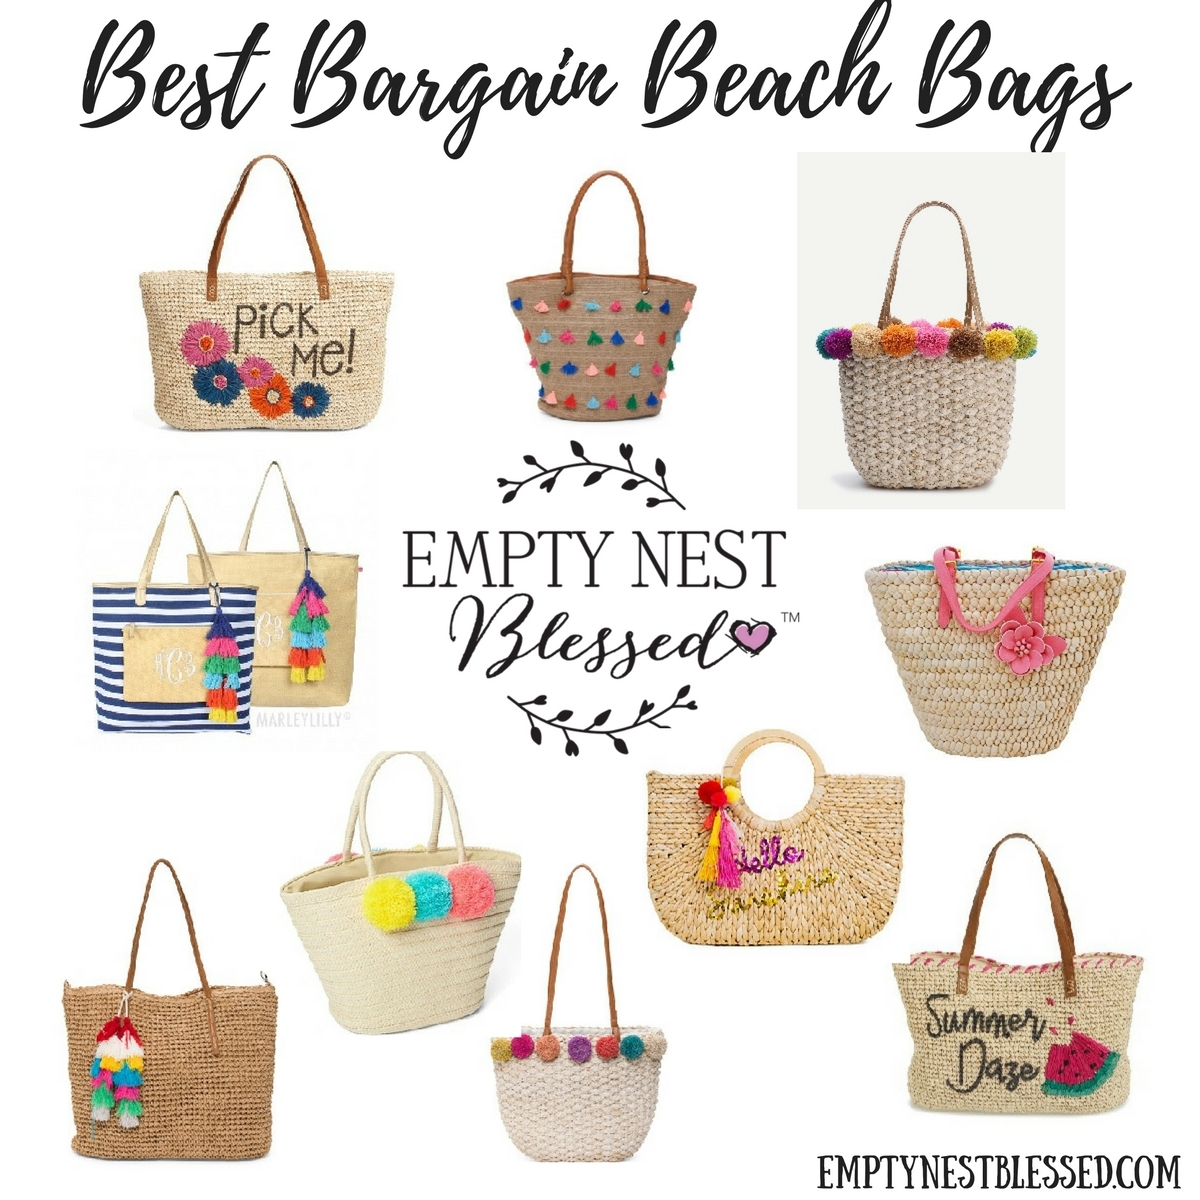 Best Bargain Beach Bags for Summer | How Cute (and Cheap!) are These?